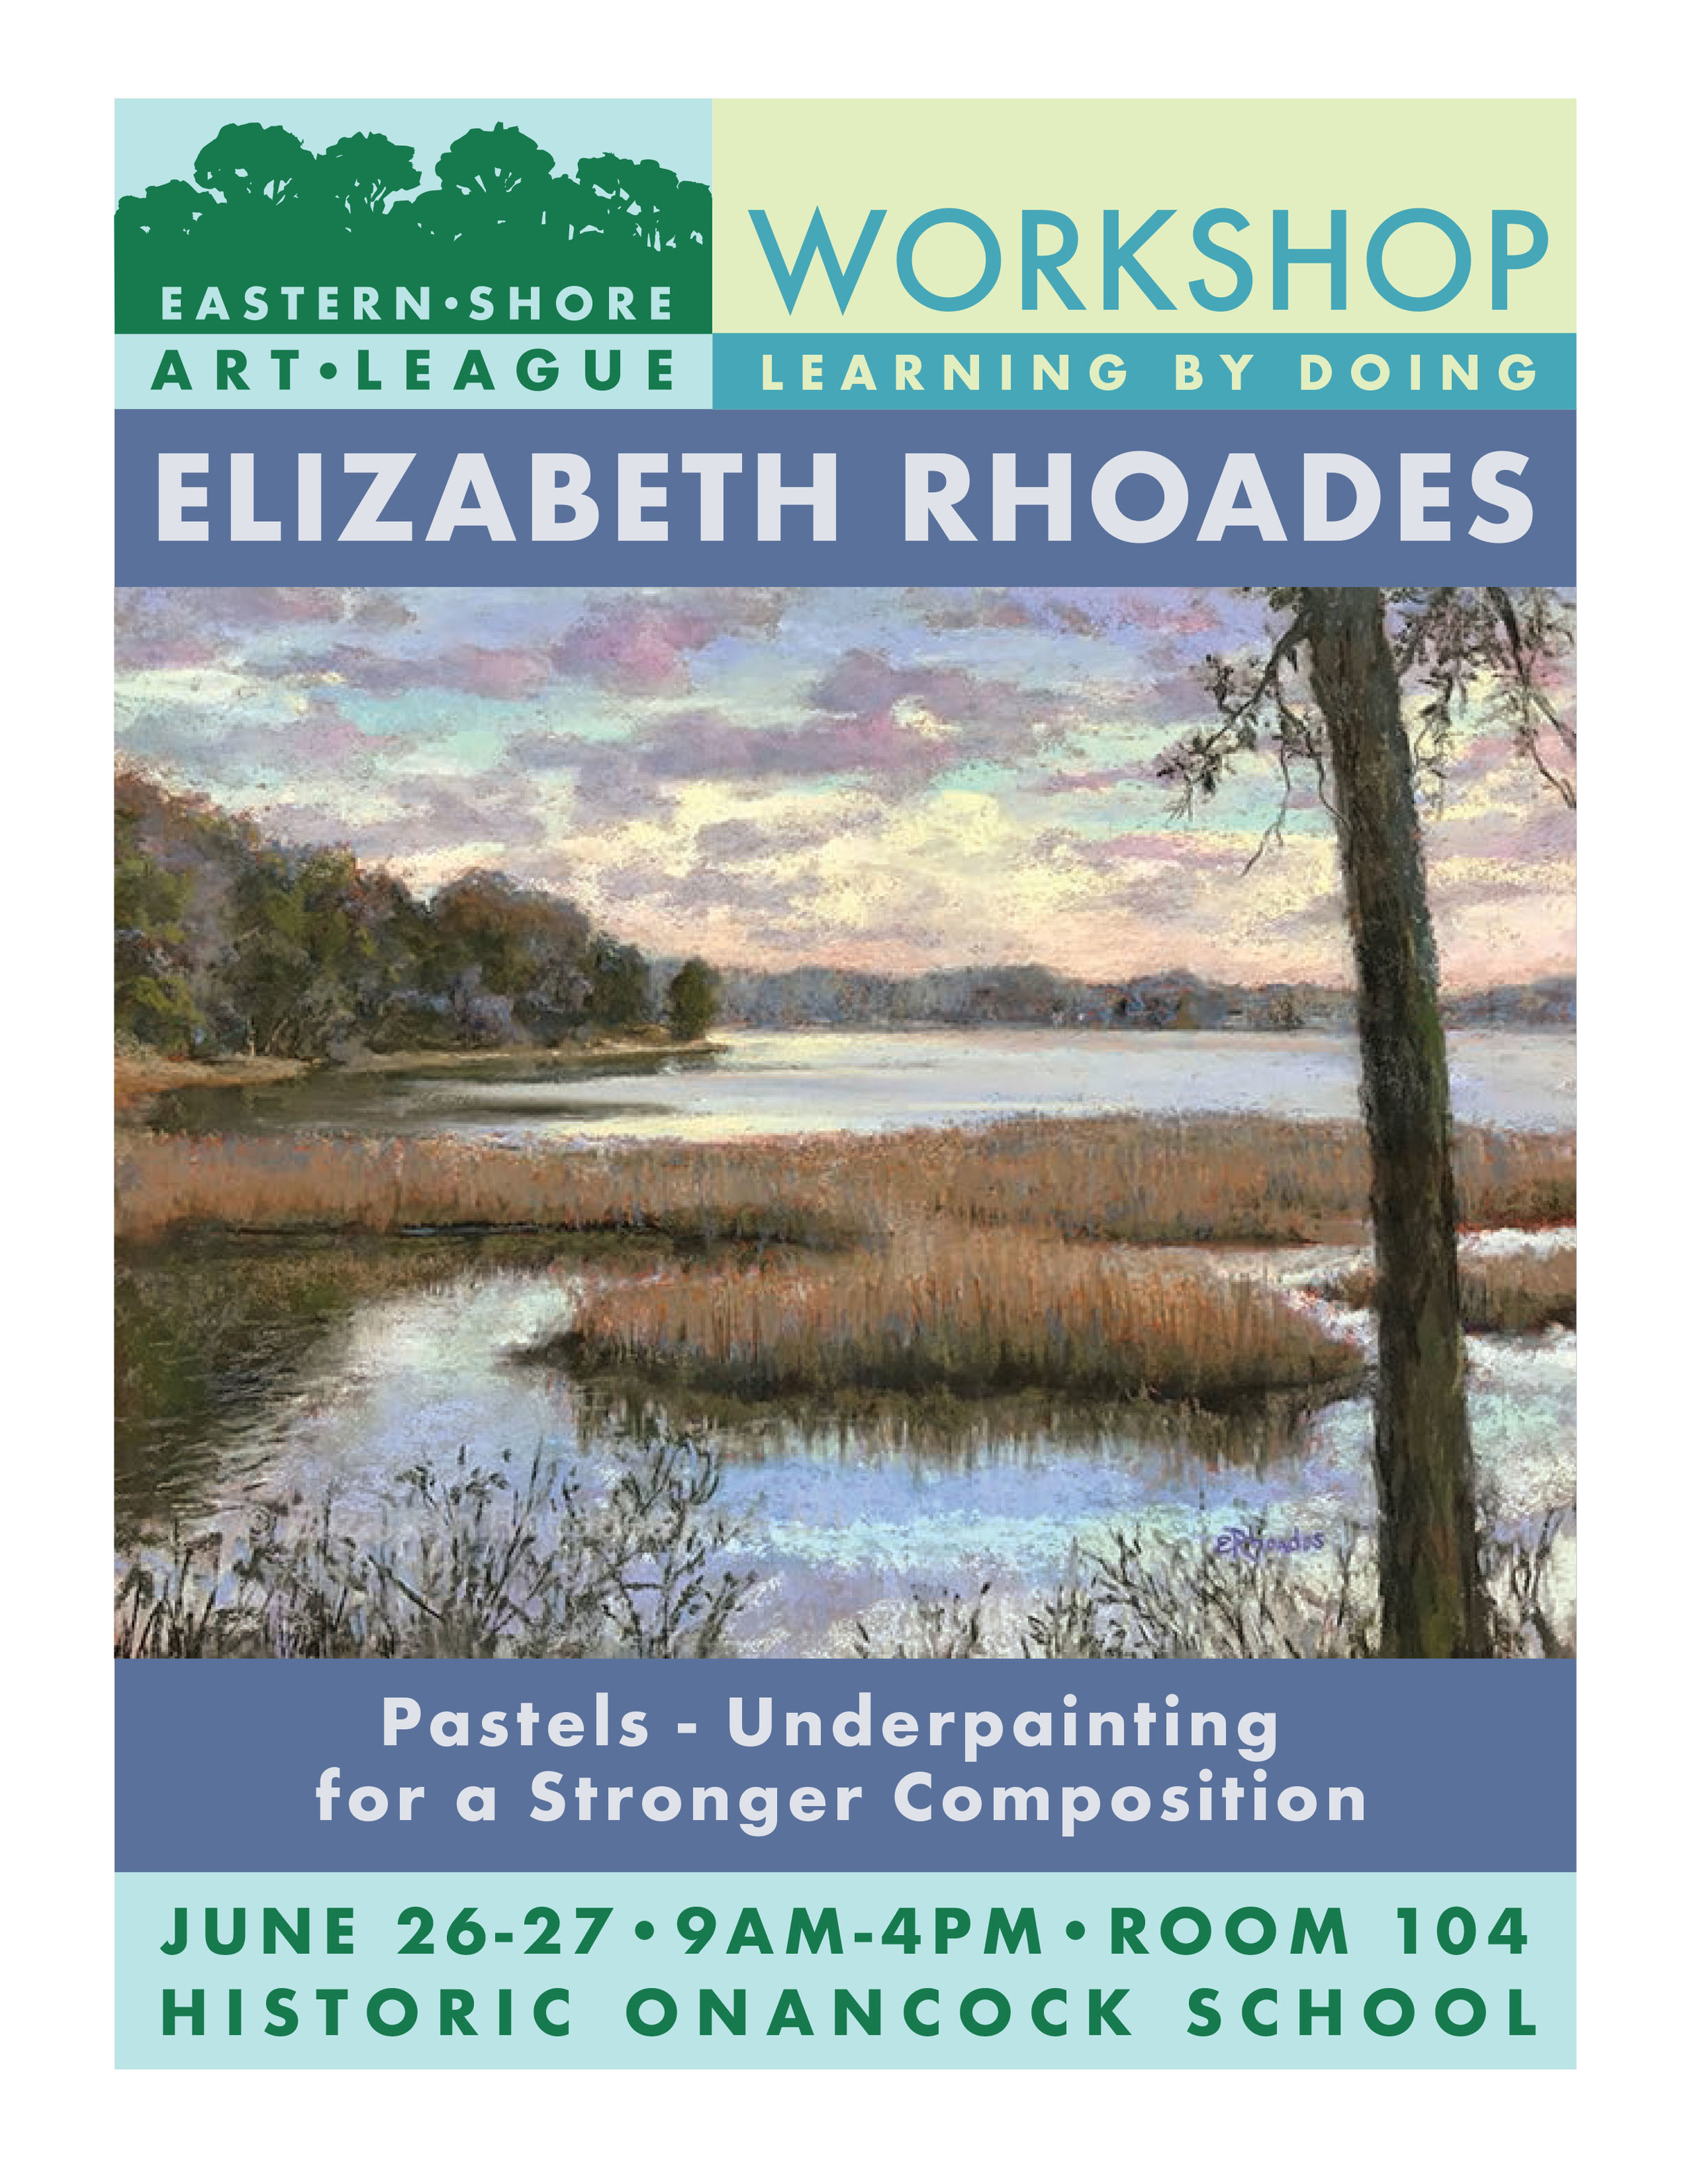 Workshop - Pastels - Underpainting for a stronger Compostion.Room 104 of Historic Onancock School.Fee: $200